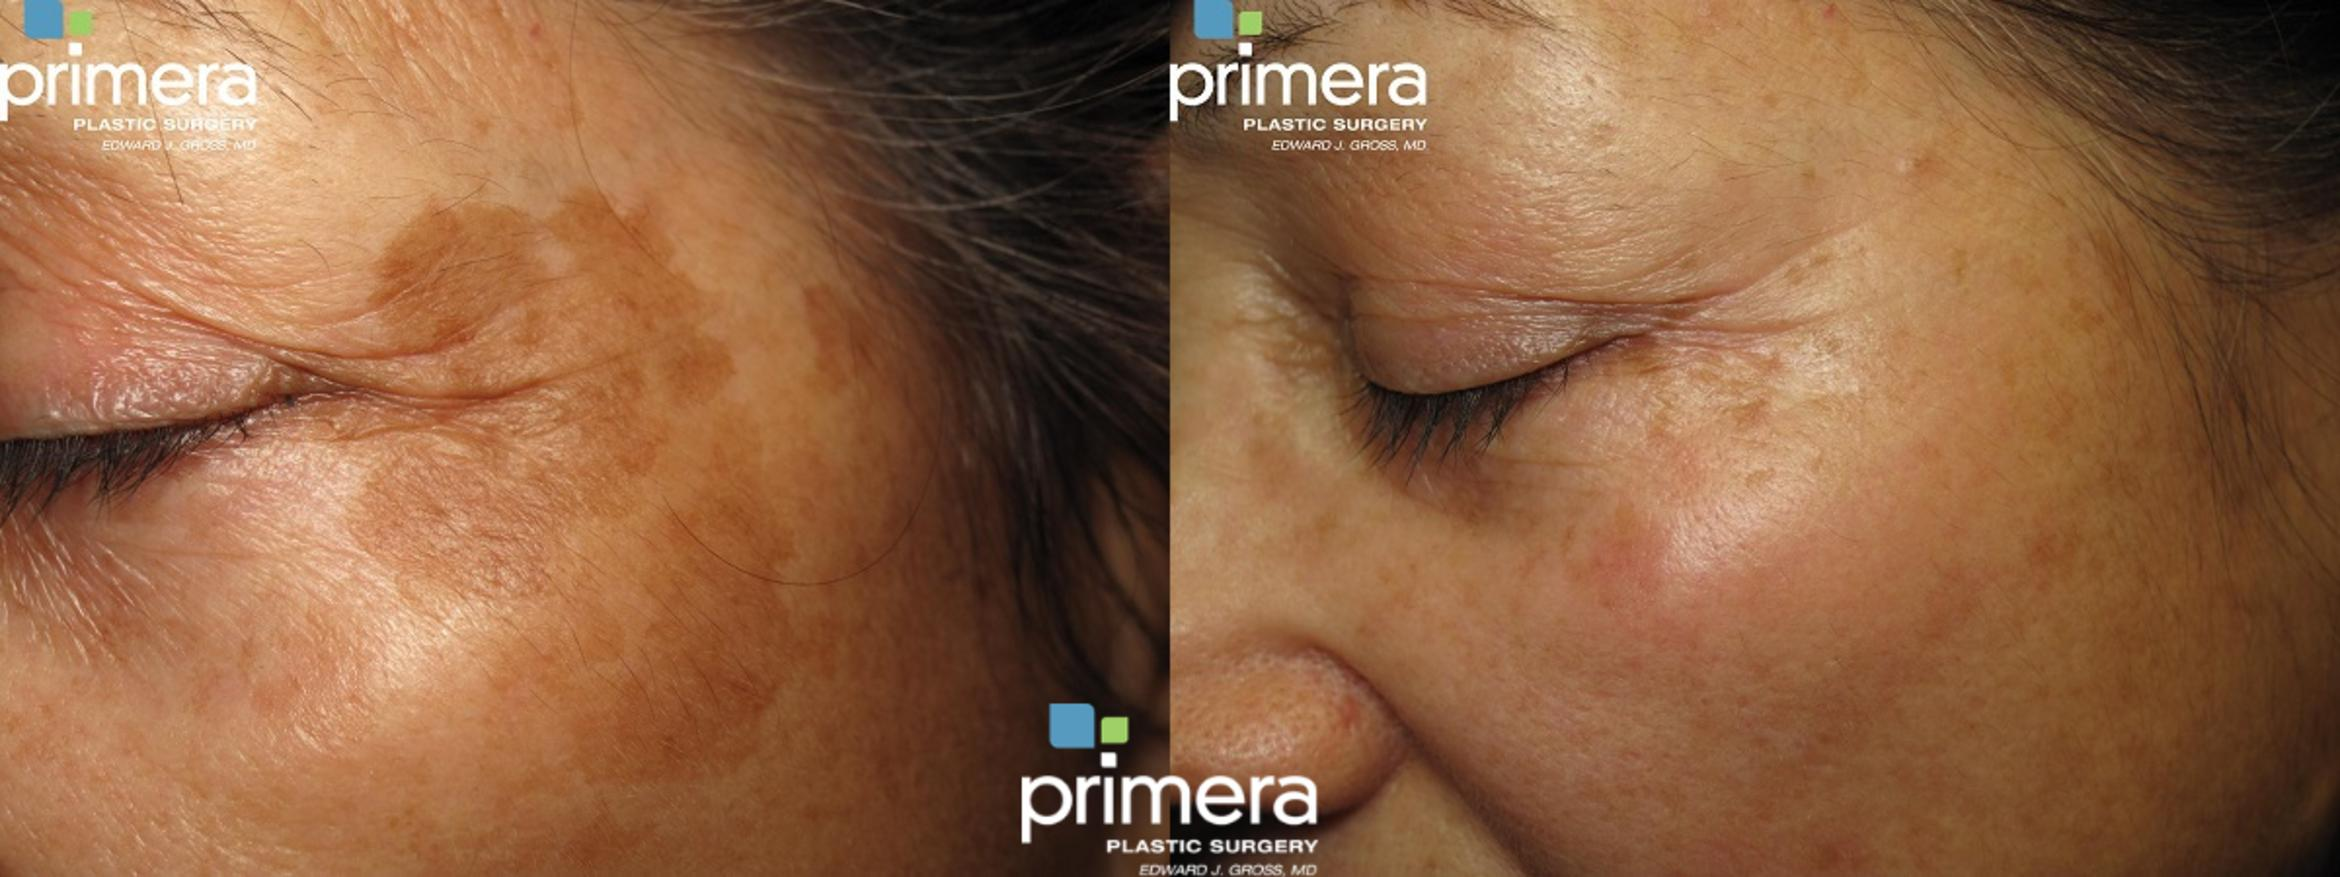 YAG Laser Before & After Photo | Orlando, Florida | Primera Plastic Surgery